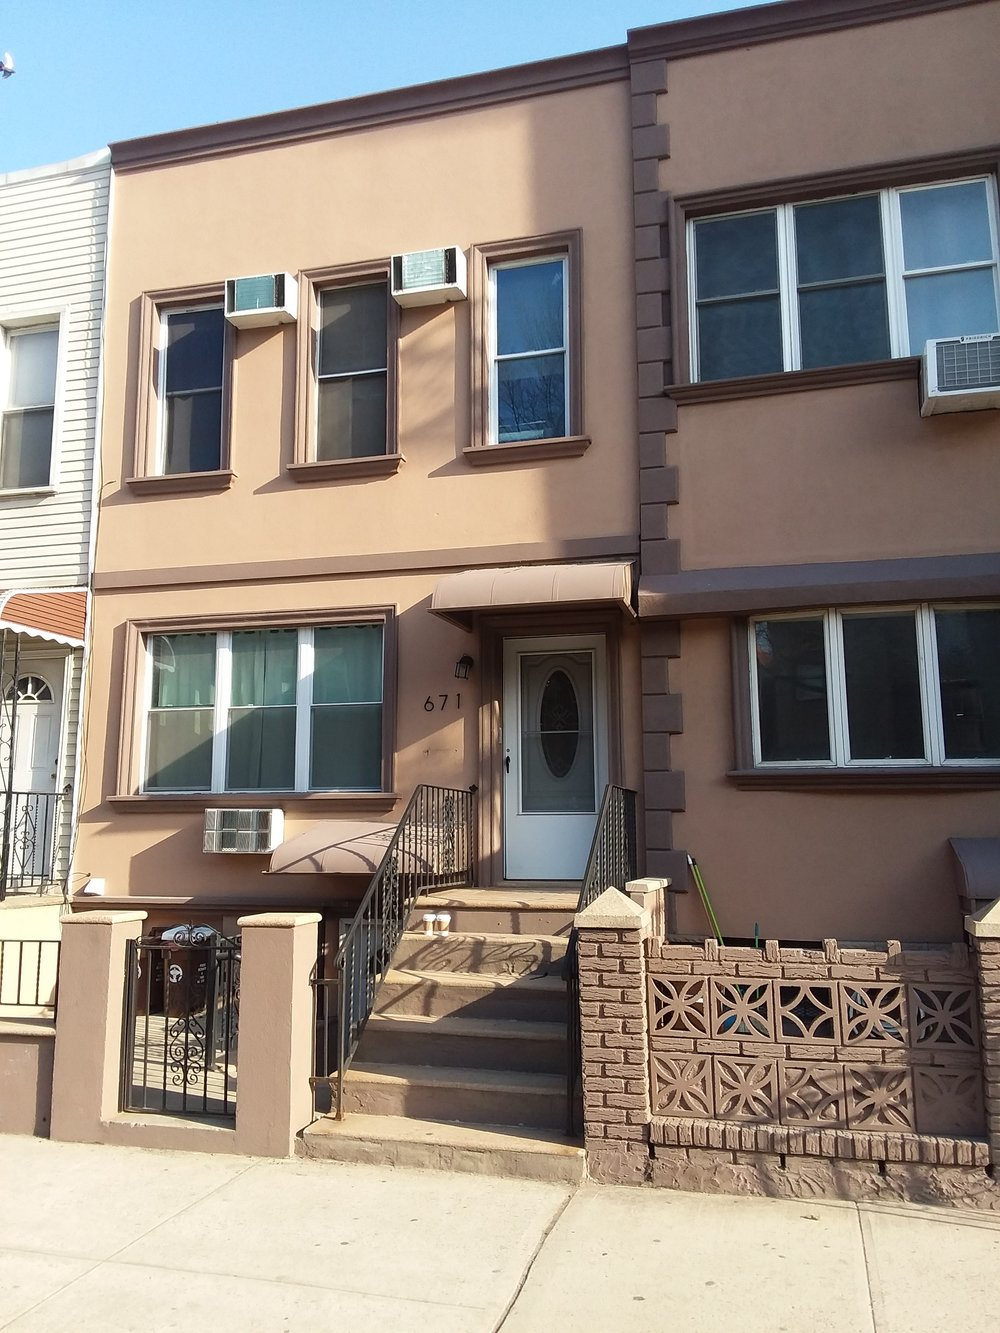 """671 Metropolitan Avene in Brooklyn.  """"Home"""" for all 20 of us for 5 nights."""